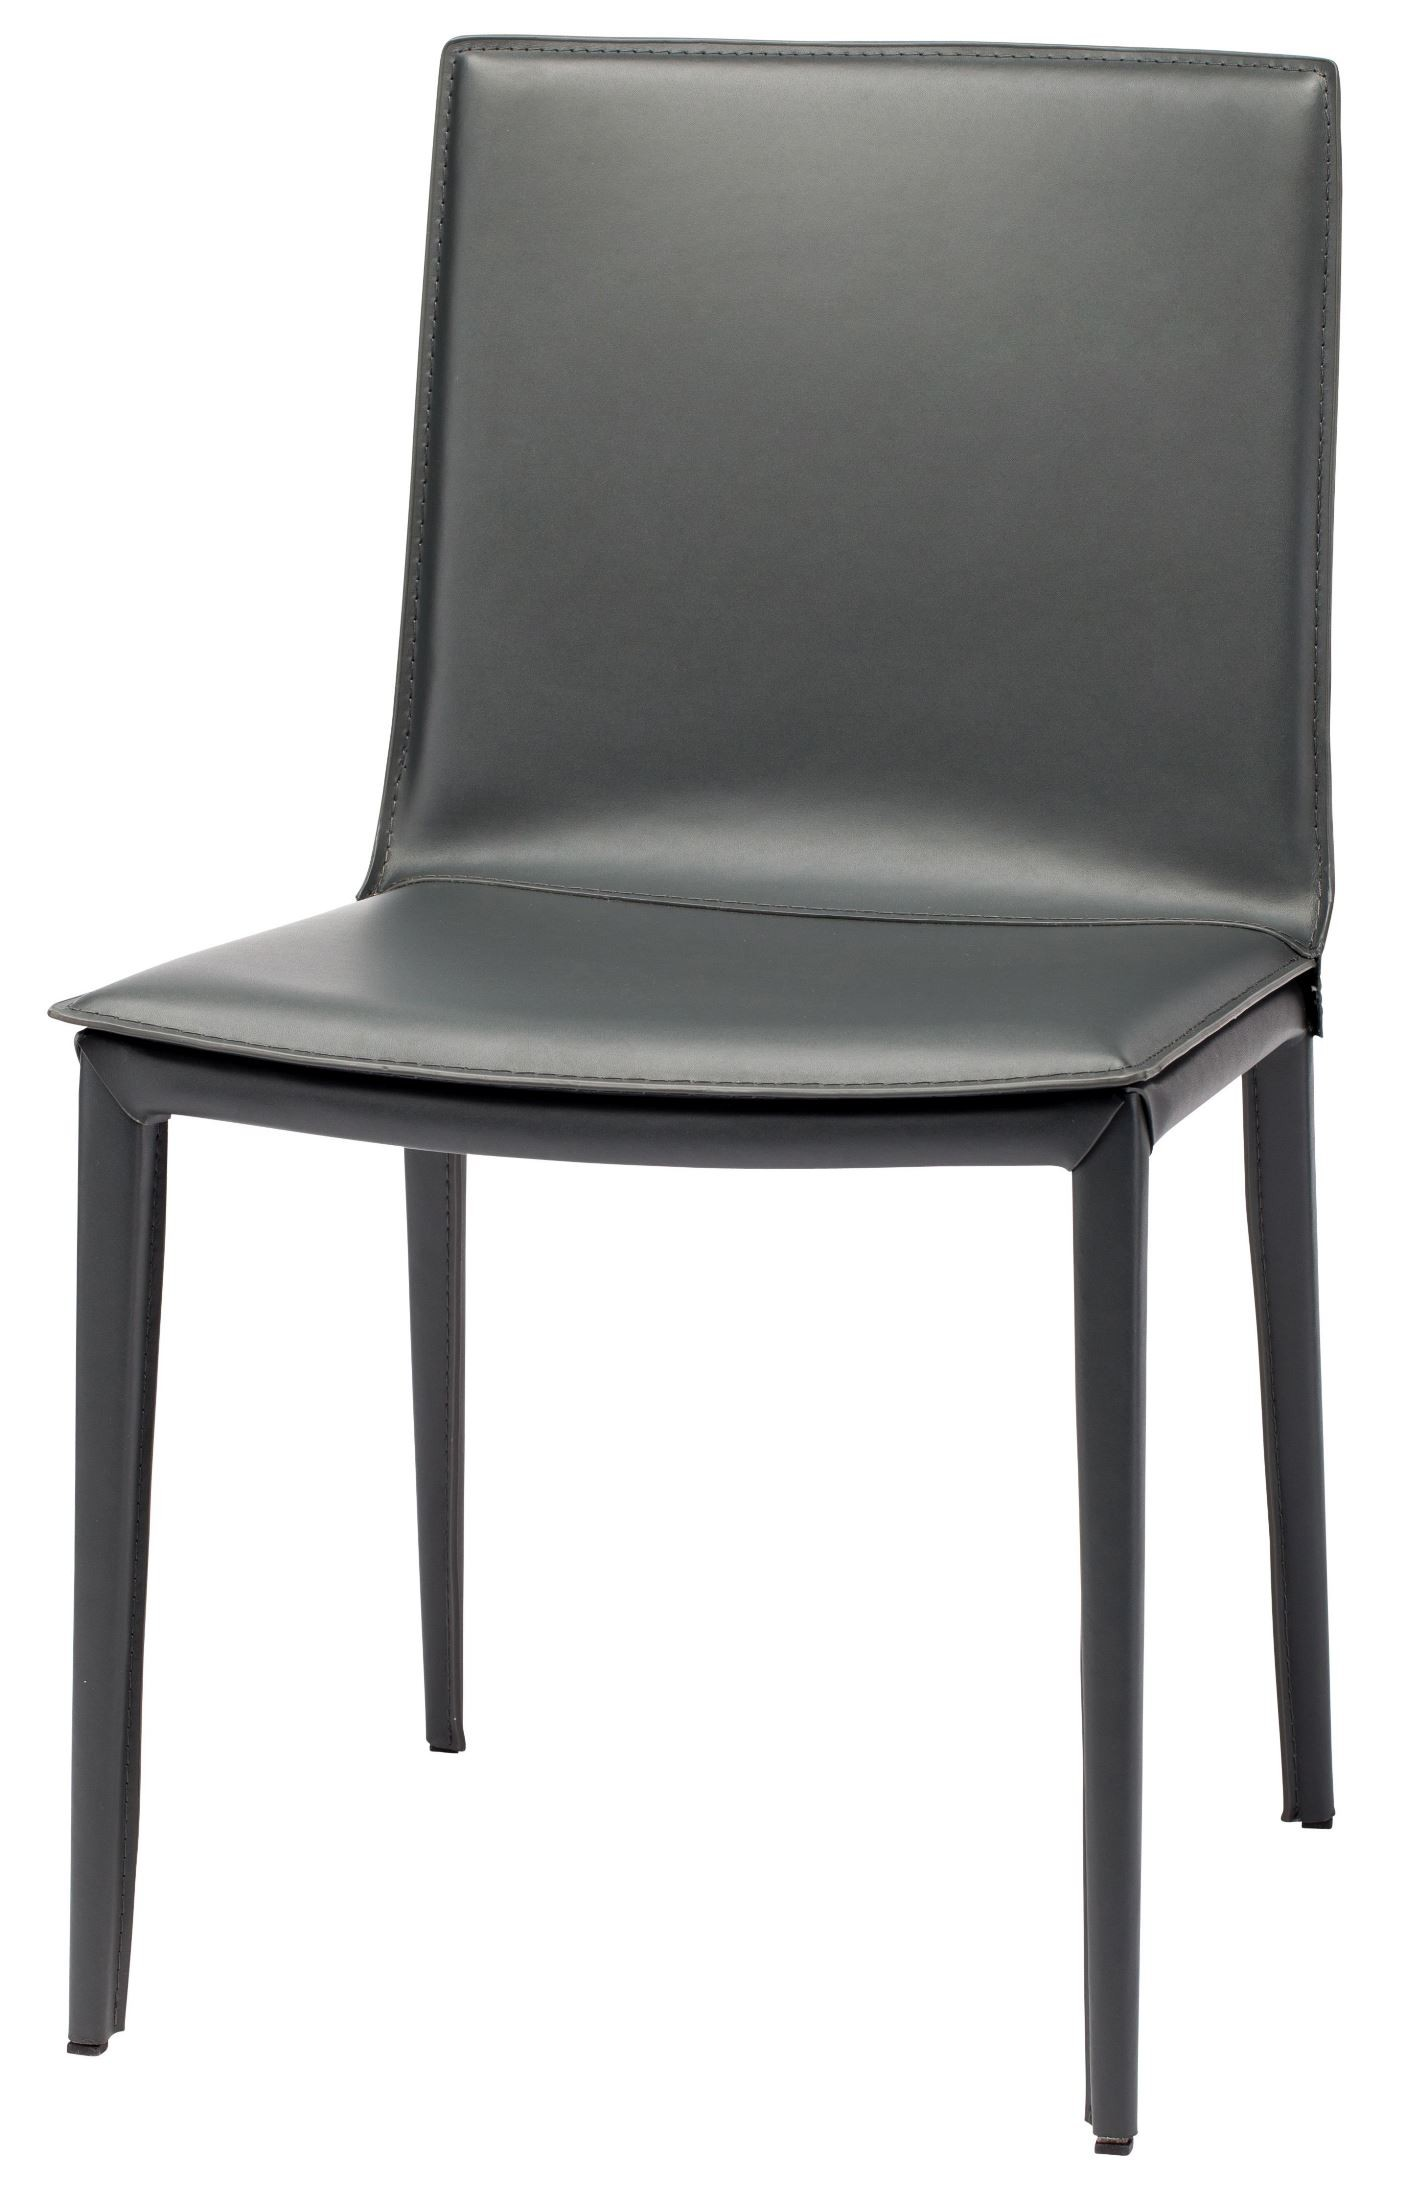 Palma Grey Leather Dining Chair From Nuevo Coleman Furniture